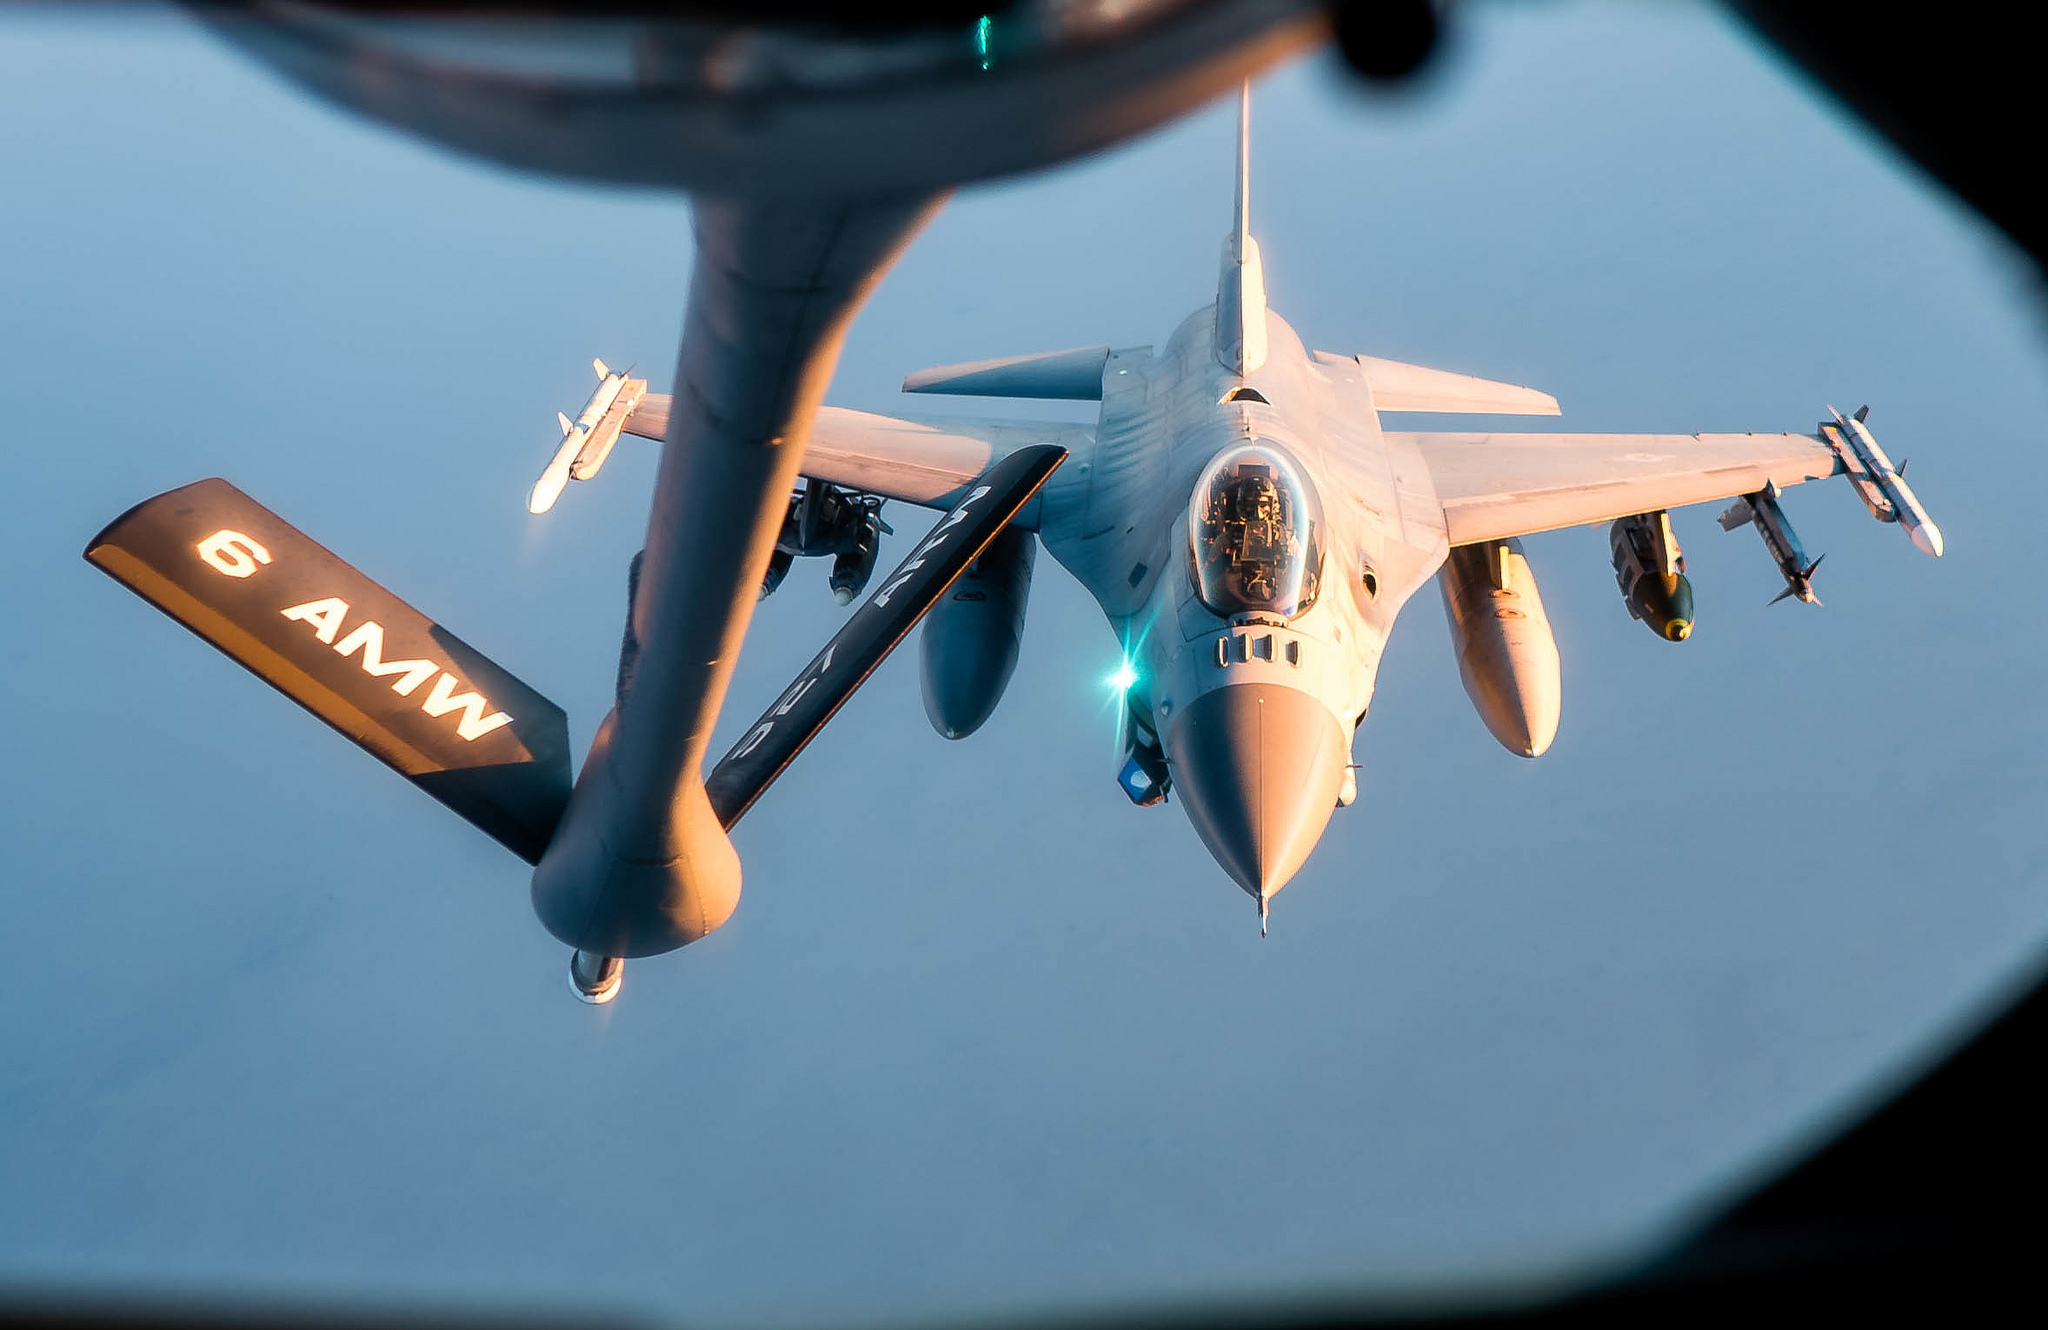 A 28th Expeditionary Aerial Refueling Squadron KC-135 Stratotanker refuels an Air Force F-16 Fighting Falcon in support of Operation Inherent Resolve, Nov. 29, 2018. (Staff Sgt. James Cason/Air Force)